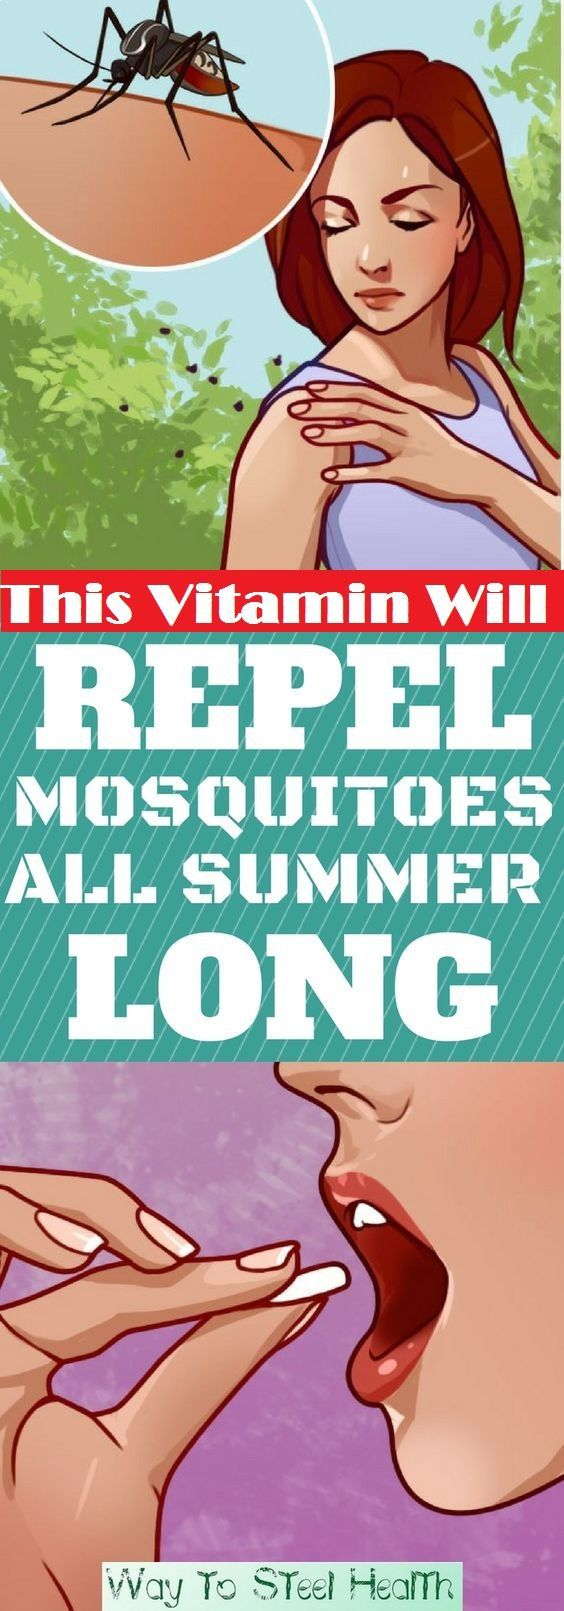 Taking Vitimin B1 25-50mg three times a day and it helps repel mosquitoes all summer long